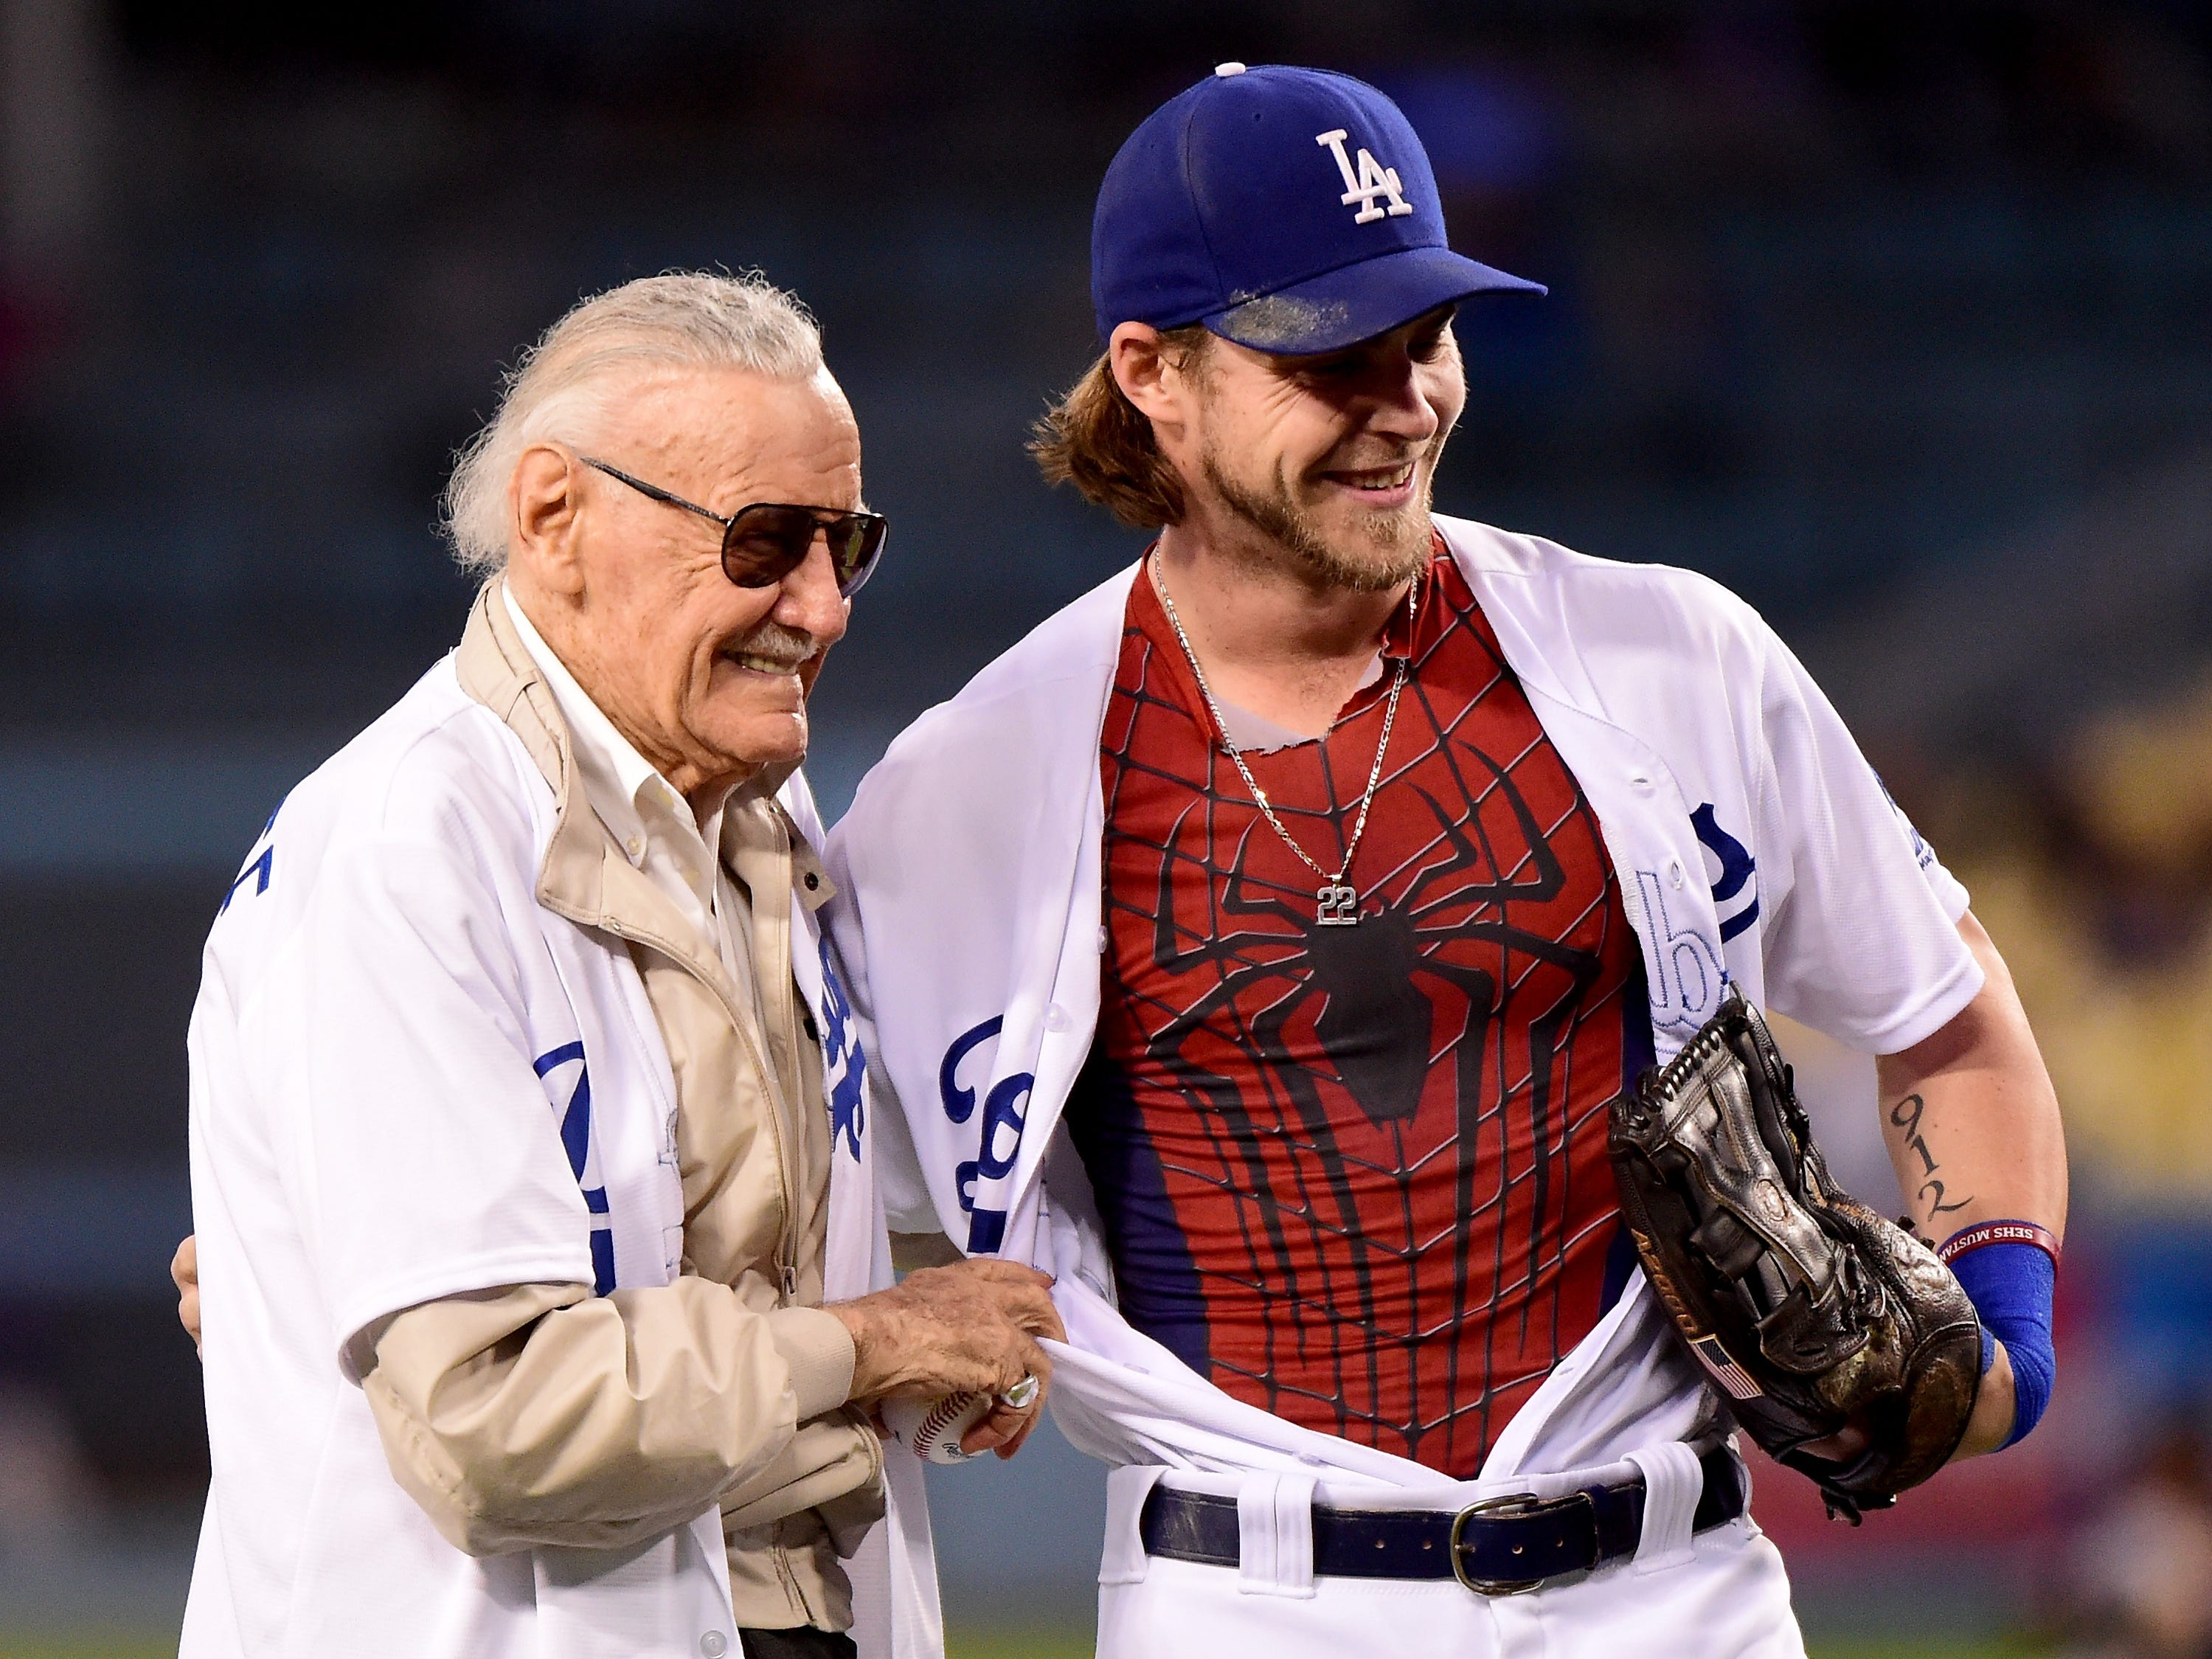 Josh Reddick  of the Los Angeles Dodgers poses with comic book mogul Stan Lee before the game against the Colorado Rockies at Dodger Stadium on September 22, 2016 in Los Angeles.